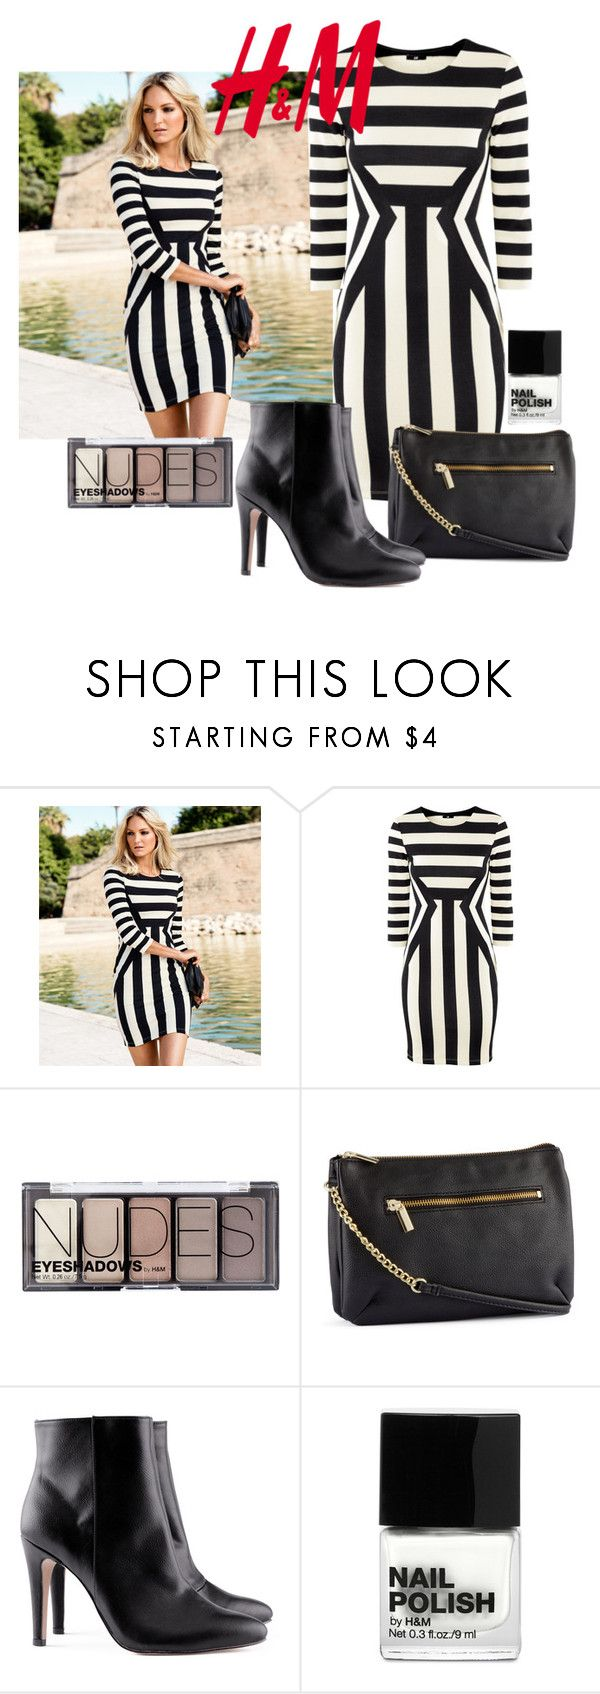 """""""H&M look"""" by ultraviolet92 ❤ liked on Polyvore featuring H&M"""